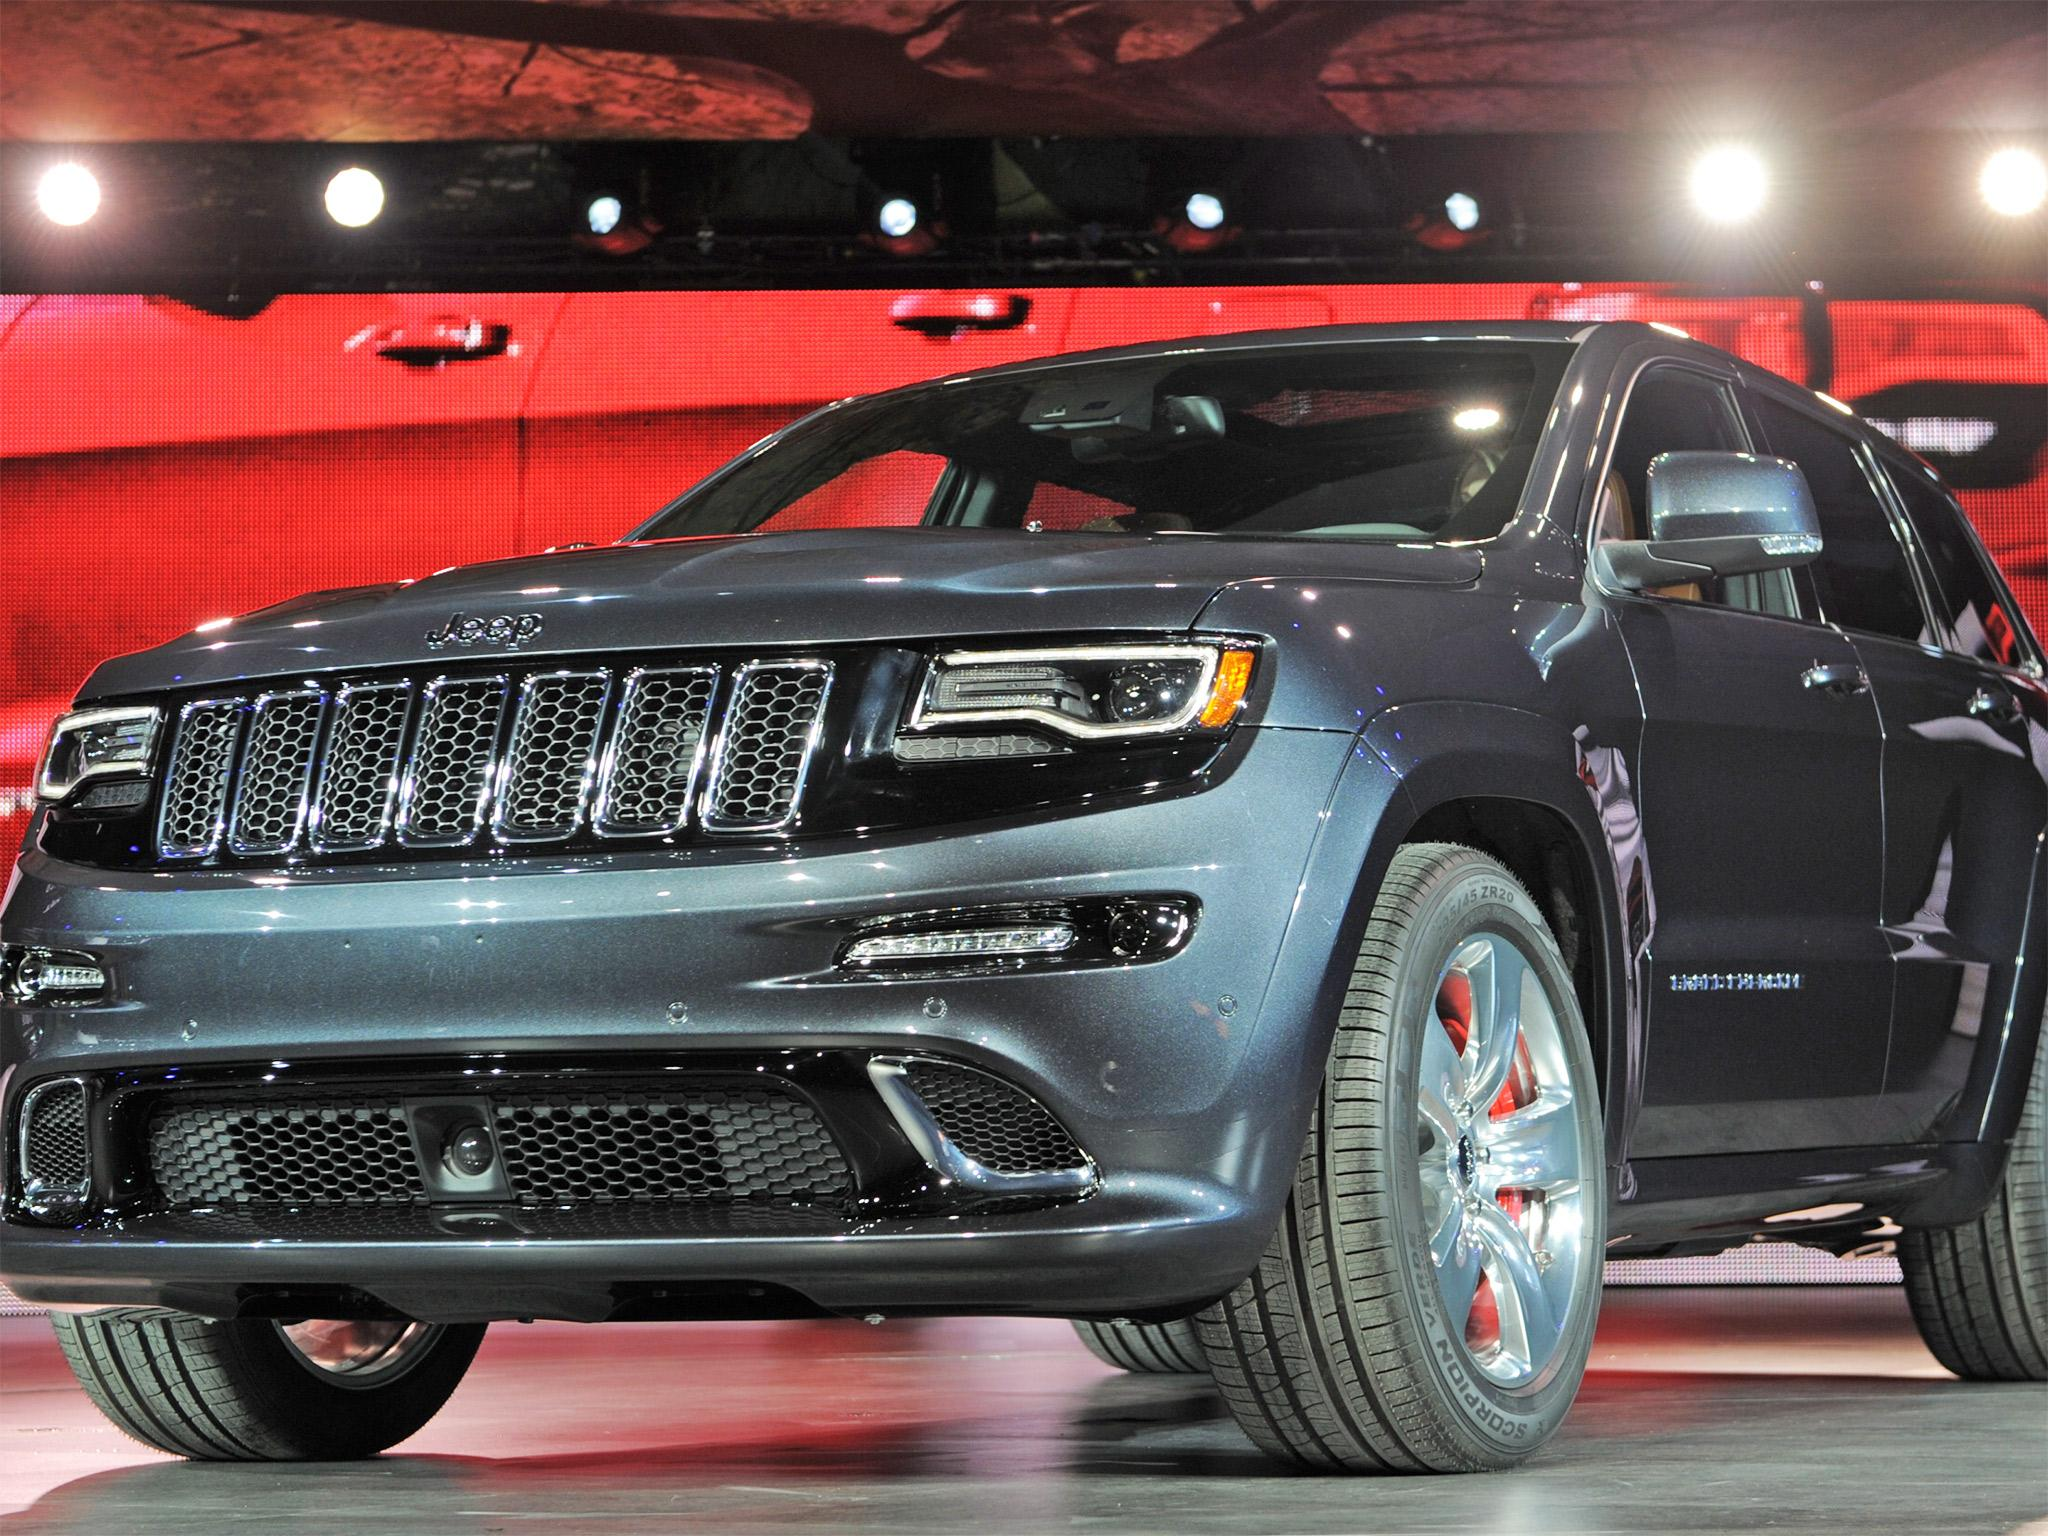 Jeep grand cherokee worst offender as 95 of uk diesels breach pollution limits the independent